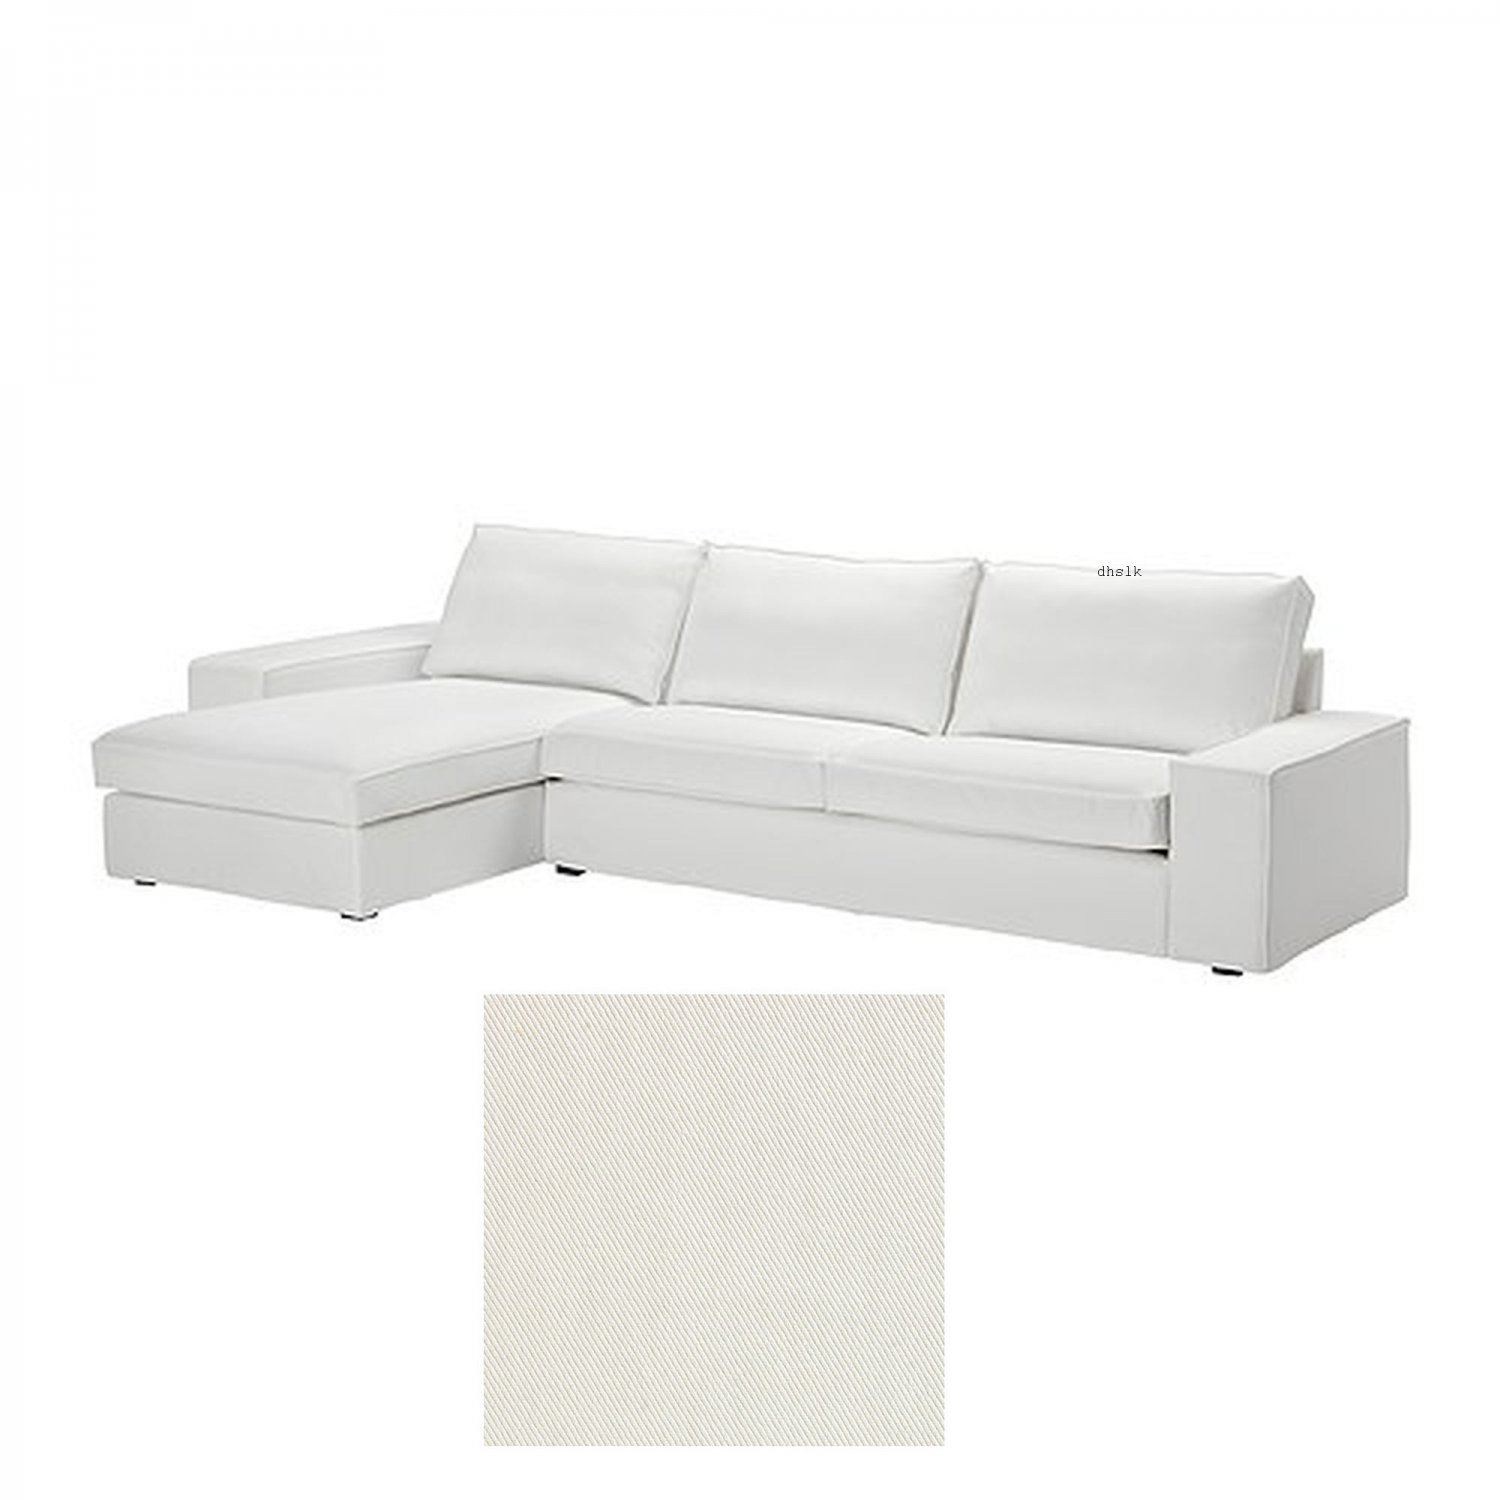 Ikea kivik 3 seat sofa w chaise longue slipcover cover for Chaise longue ikea uk